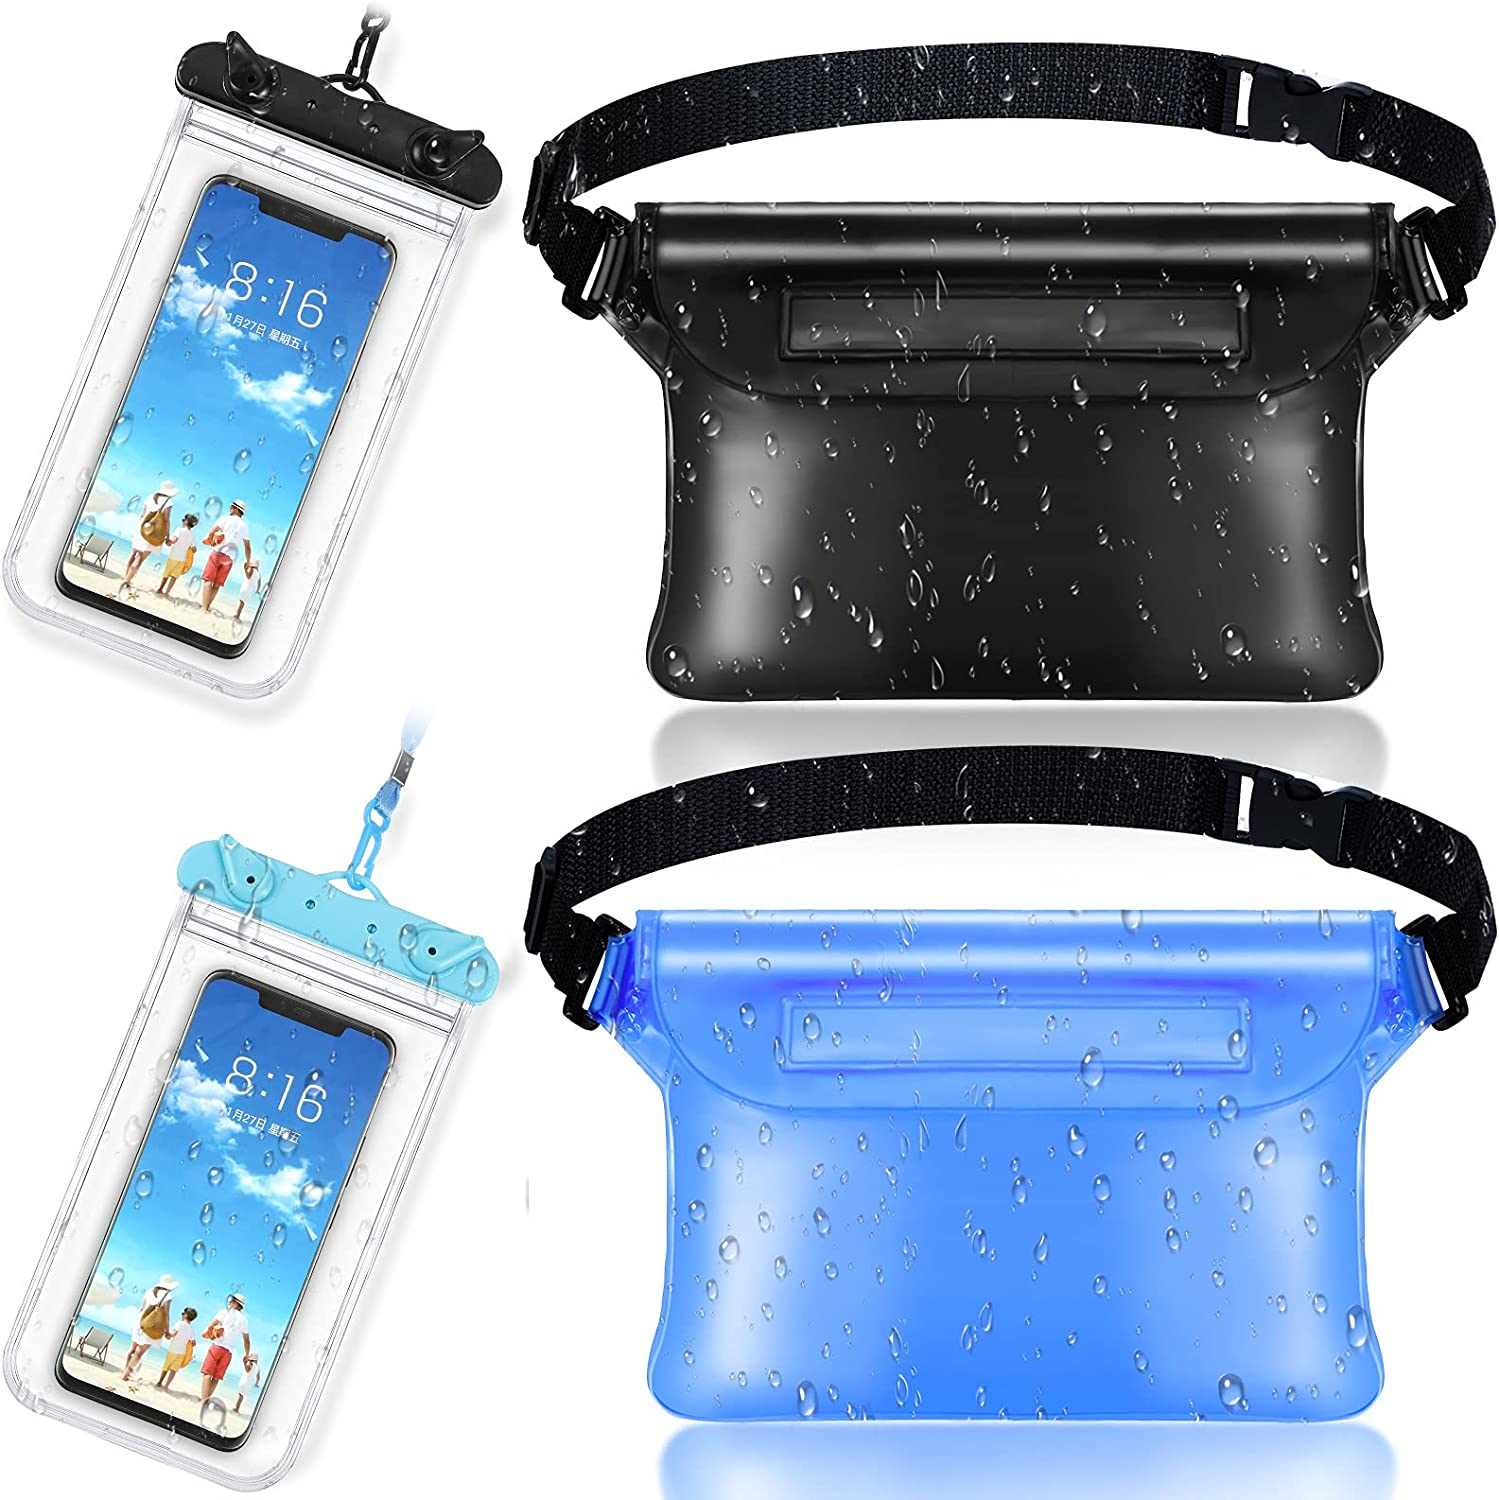 2 Pieces Waterproof Phone Pouch Universal Cellphone Case and 2 Waterproof Fanny Pack with Waist Strap Screen Touchable Dry Bag for Swimming Snorkeling Boating (Clear Black, Black, Blue)